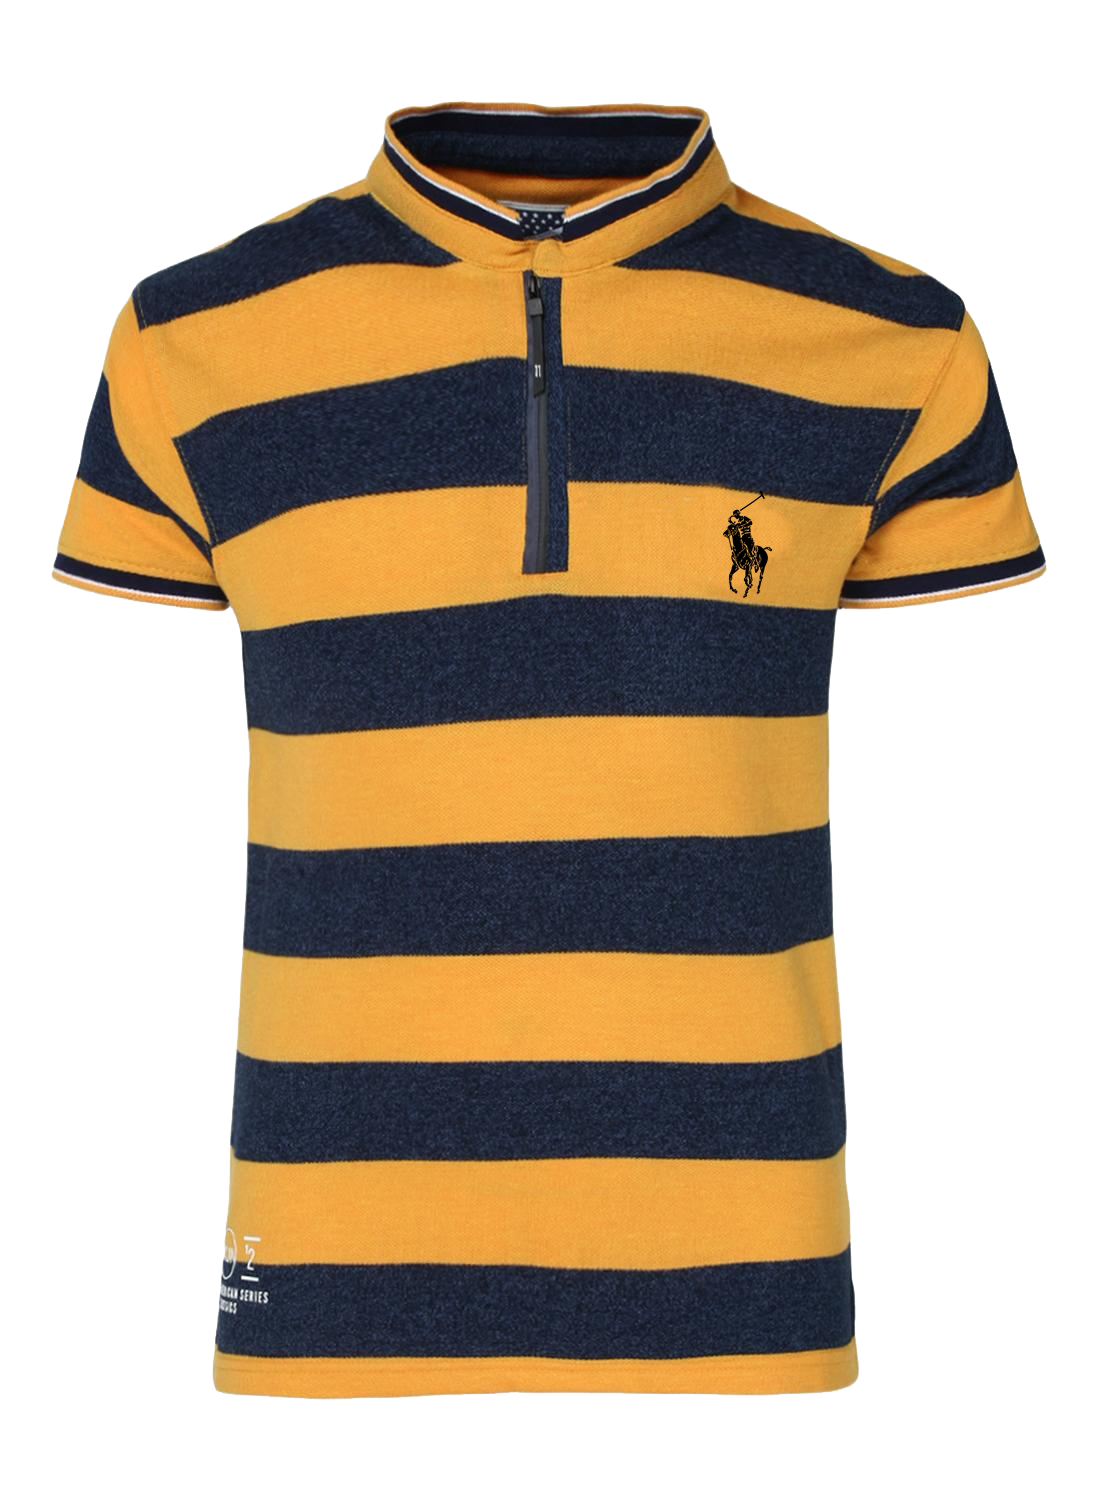 Polo T Shirts PNG Clipart.